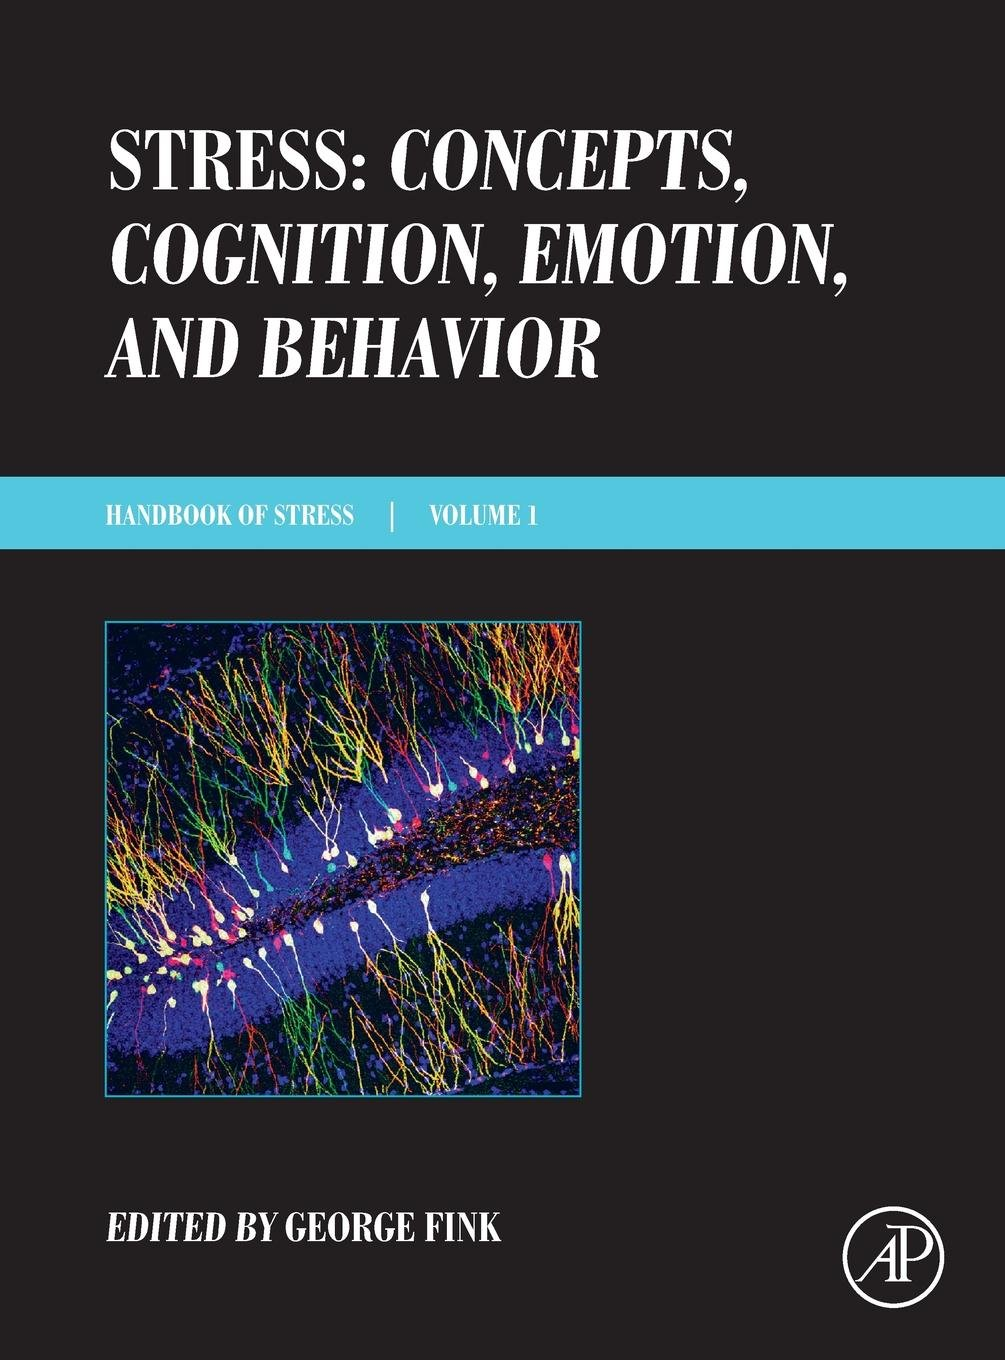 Stress: Concepts, Cognition, Emotion, and Behavior: Handbook of Stress Series, Volume 1 (Handbook in Stress) by imusti